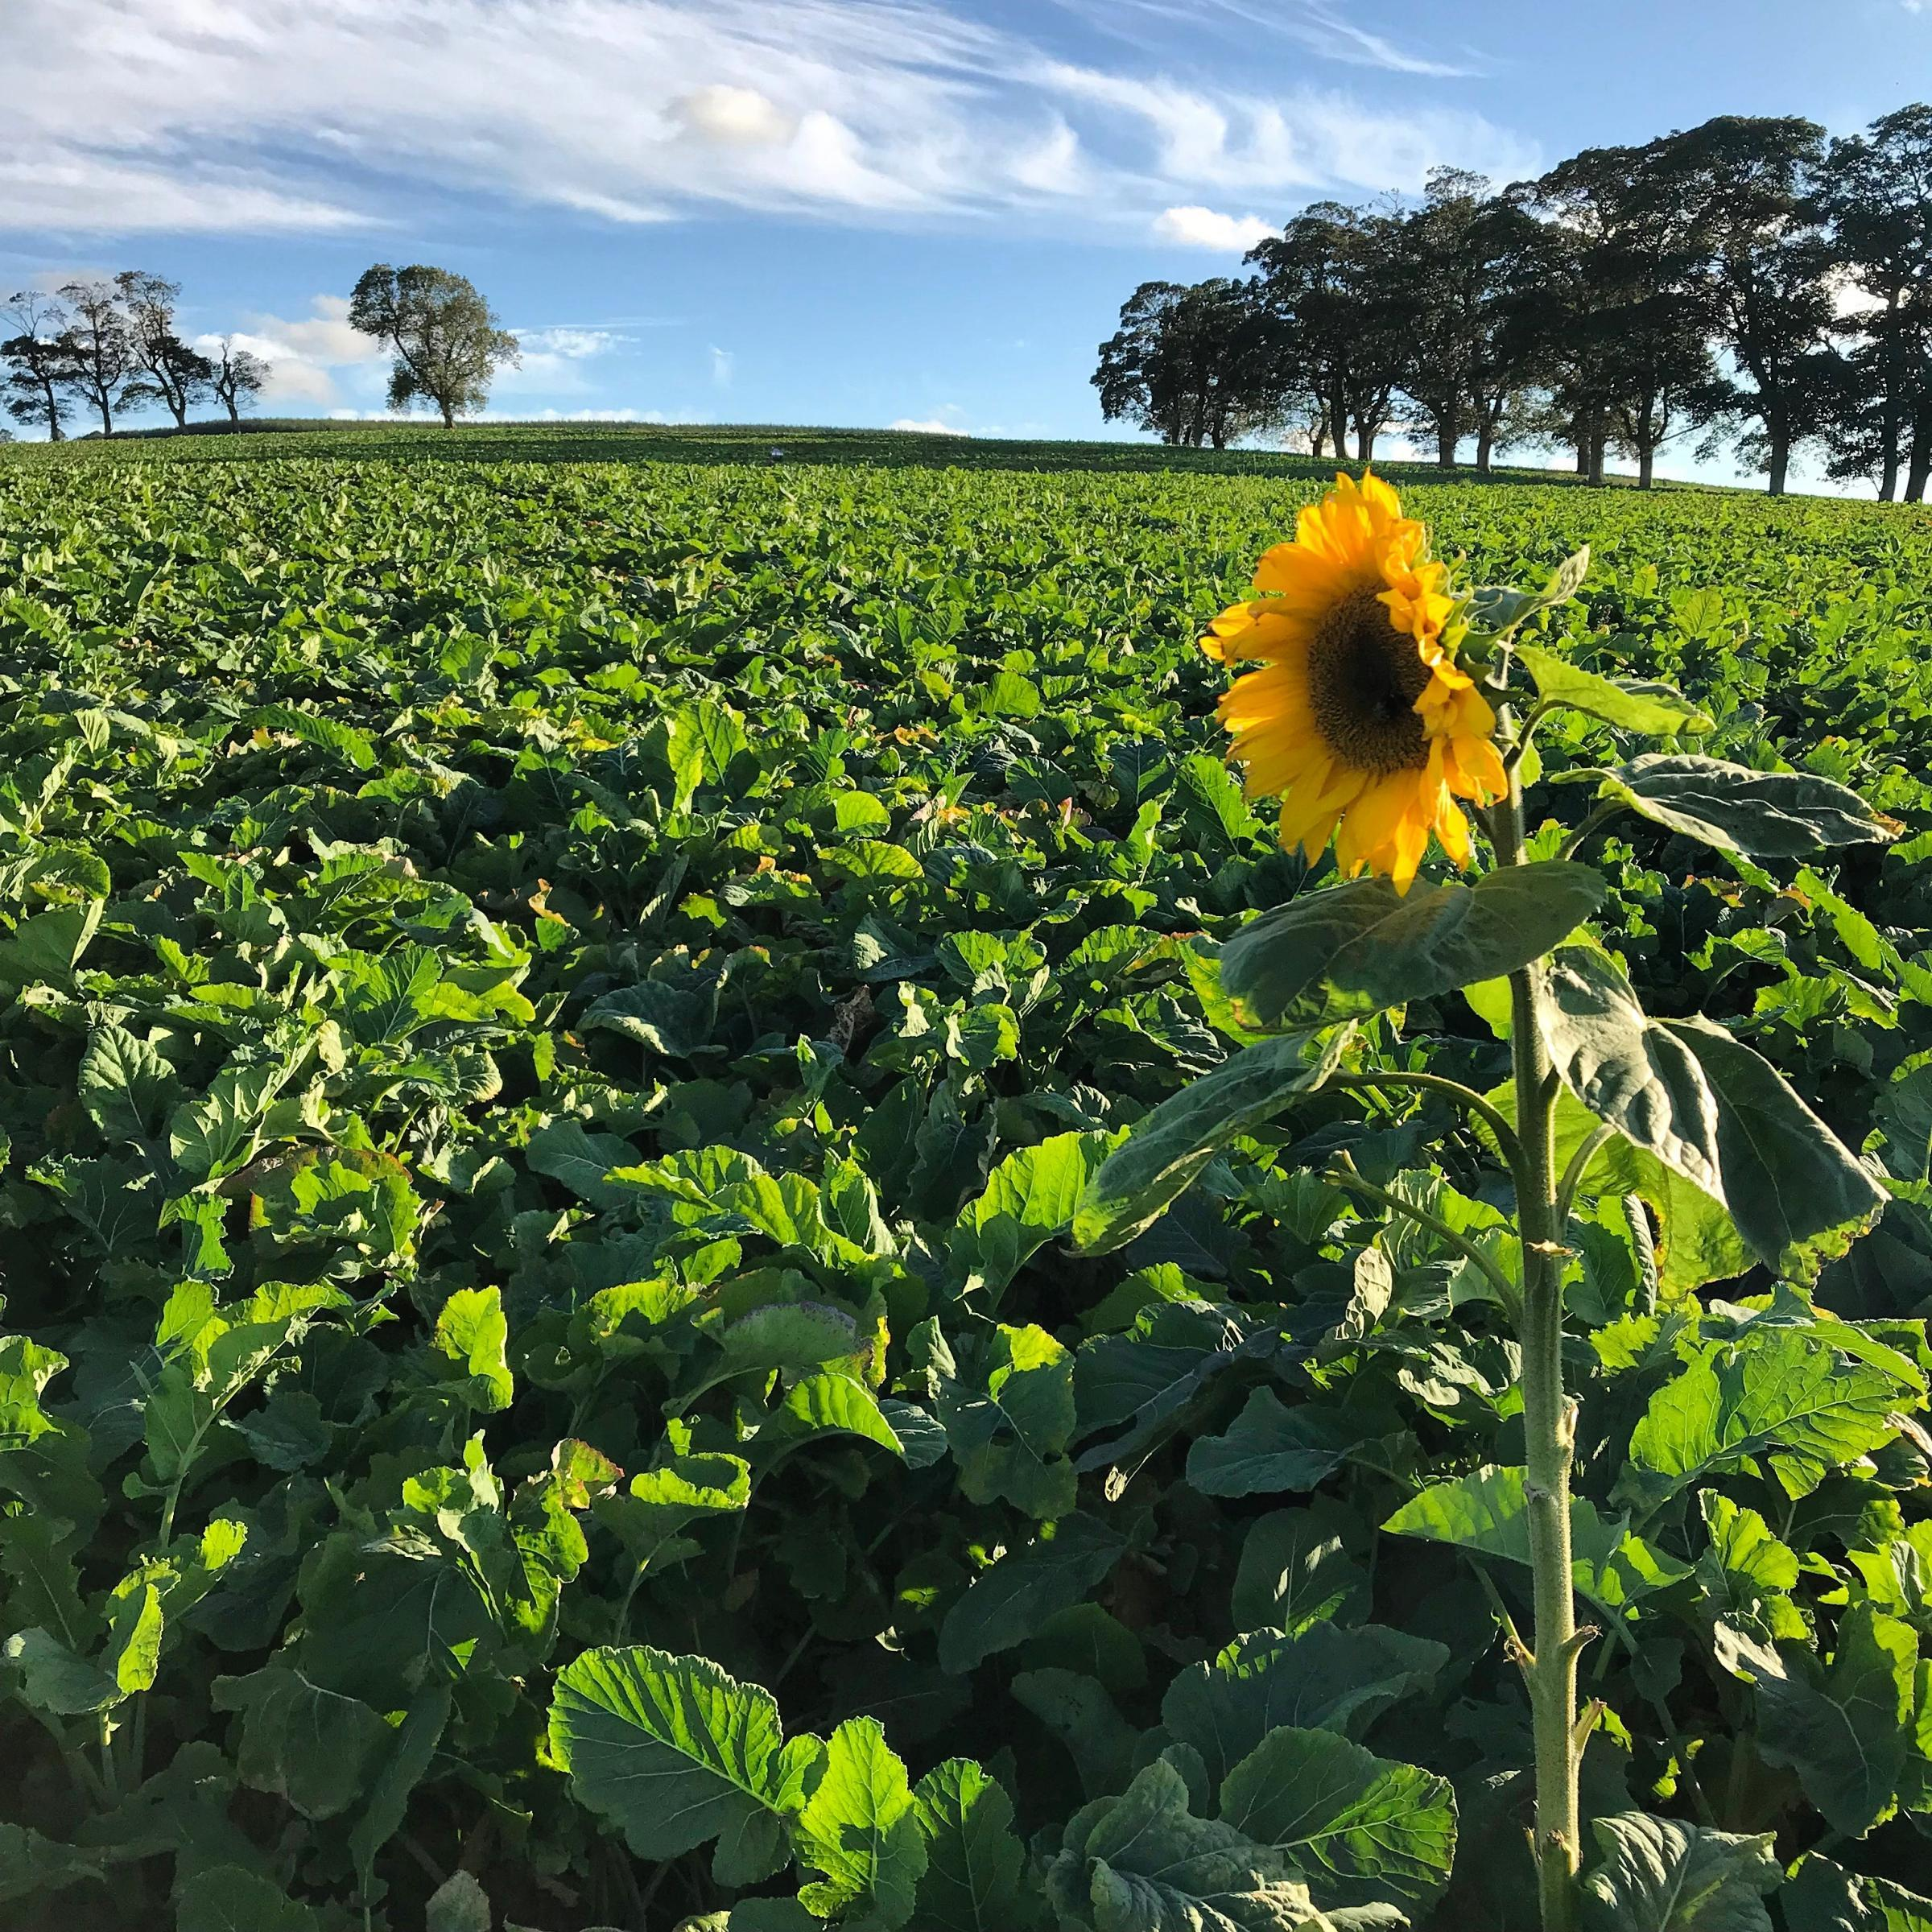 A SINGLE sunflower growing in the Waugh family's field of turnips and kale, destined for winter sheep fodder at Blackcastle Farm, near Pathhead, Midlothian (Photo: Georgia Waugh)